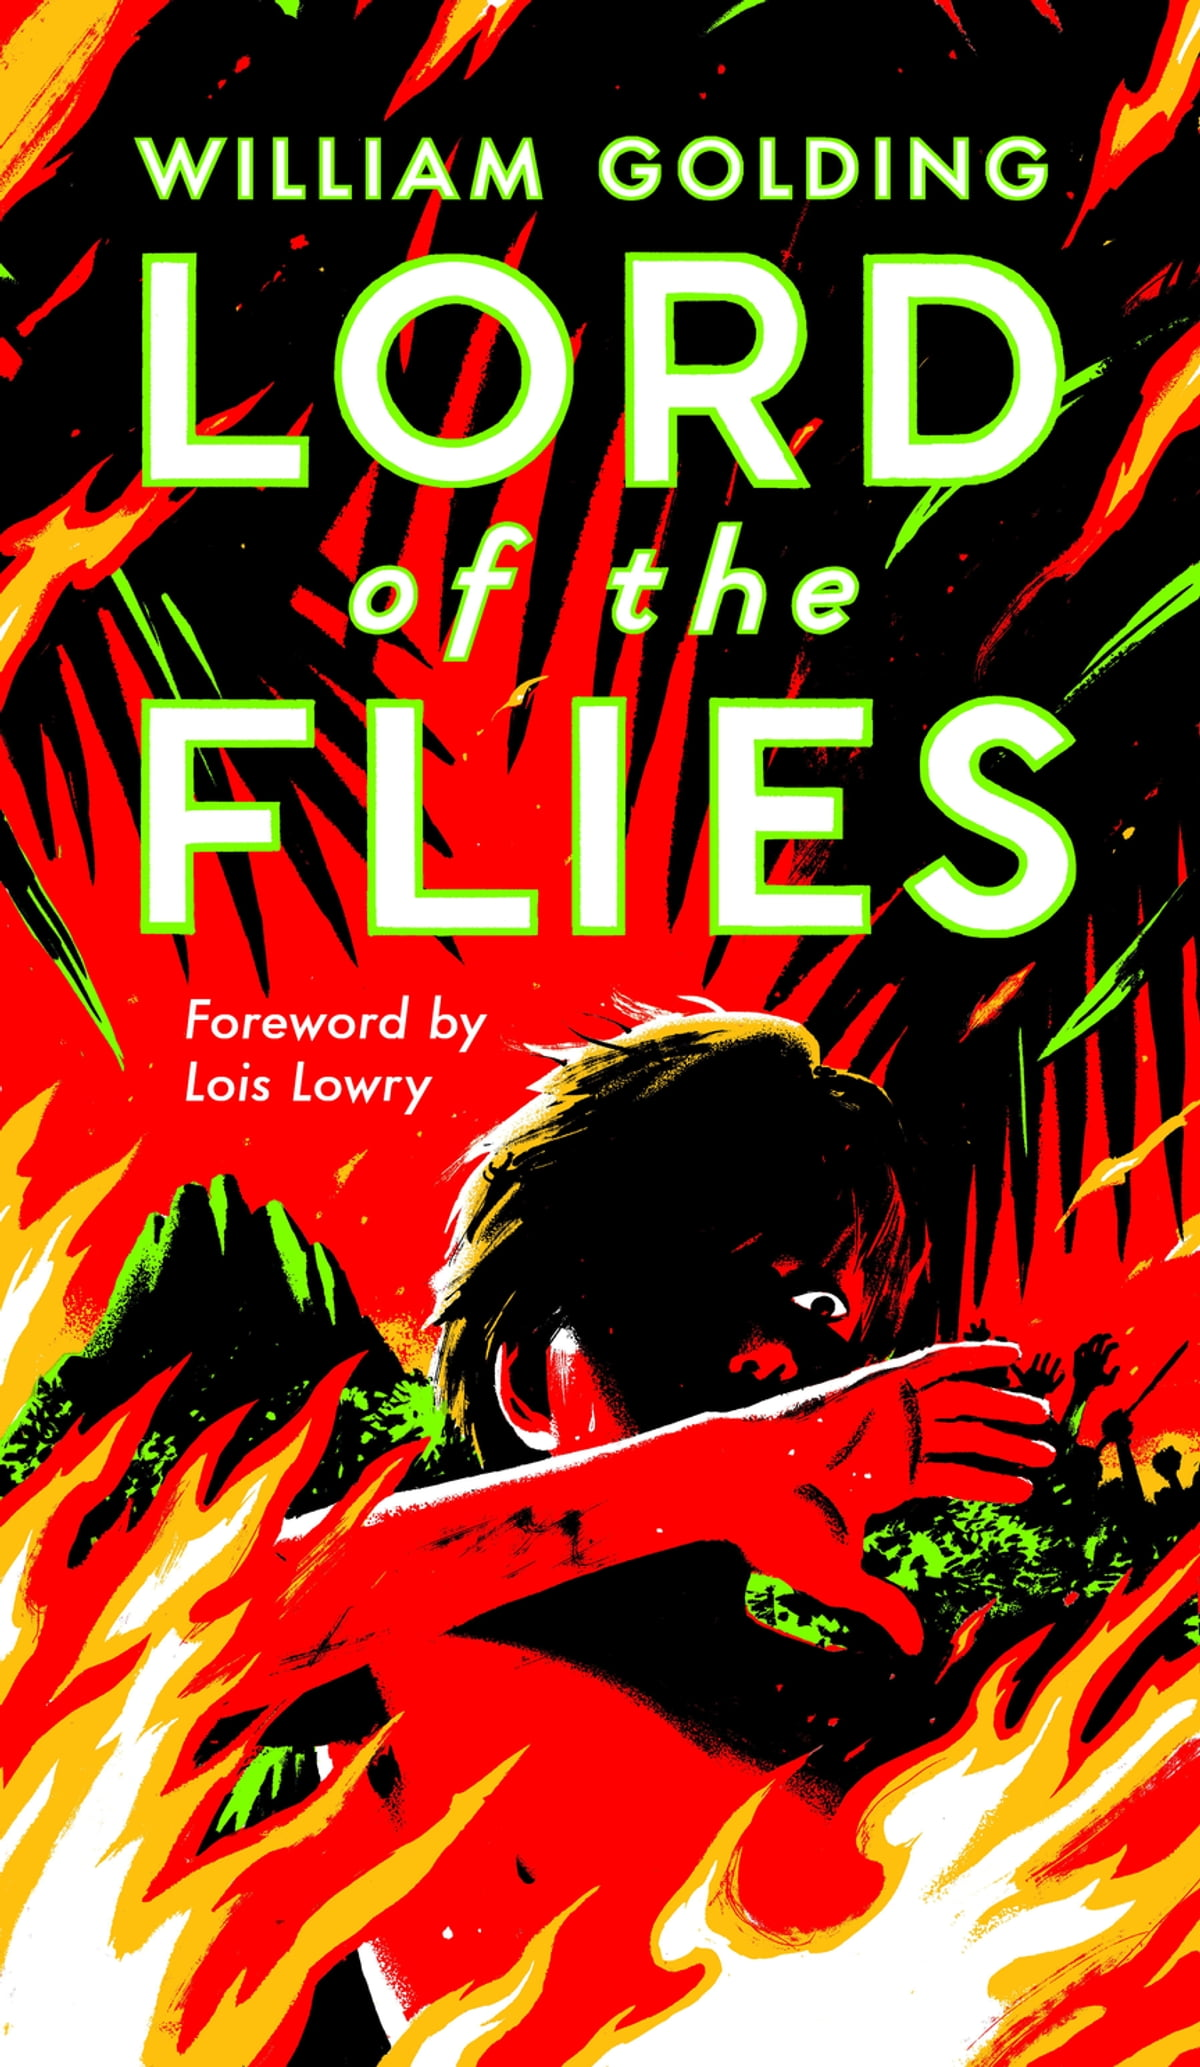 Lord of the Flies eBook by William Golding - 9781101158104 ...